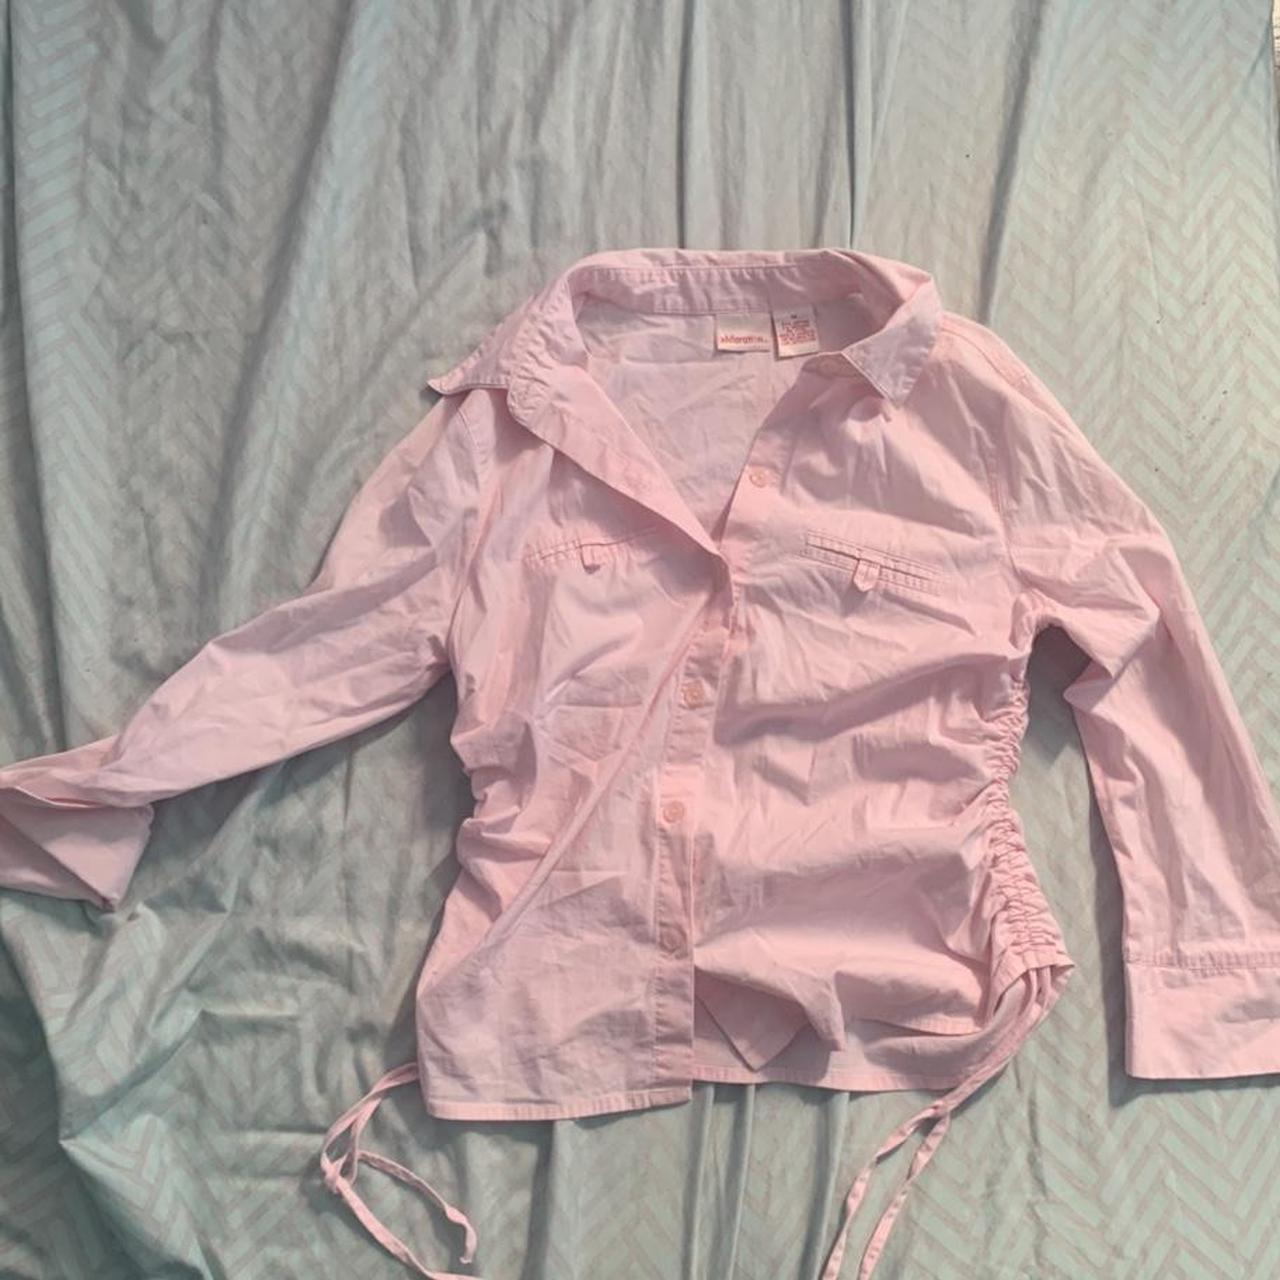 Product Image 1 - super cute light pink collared